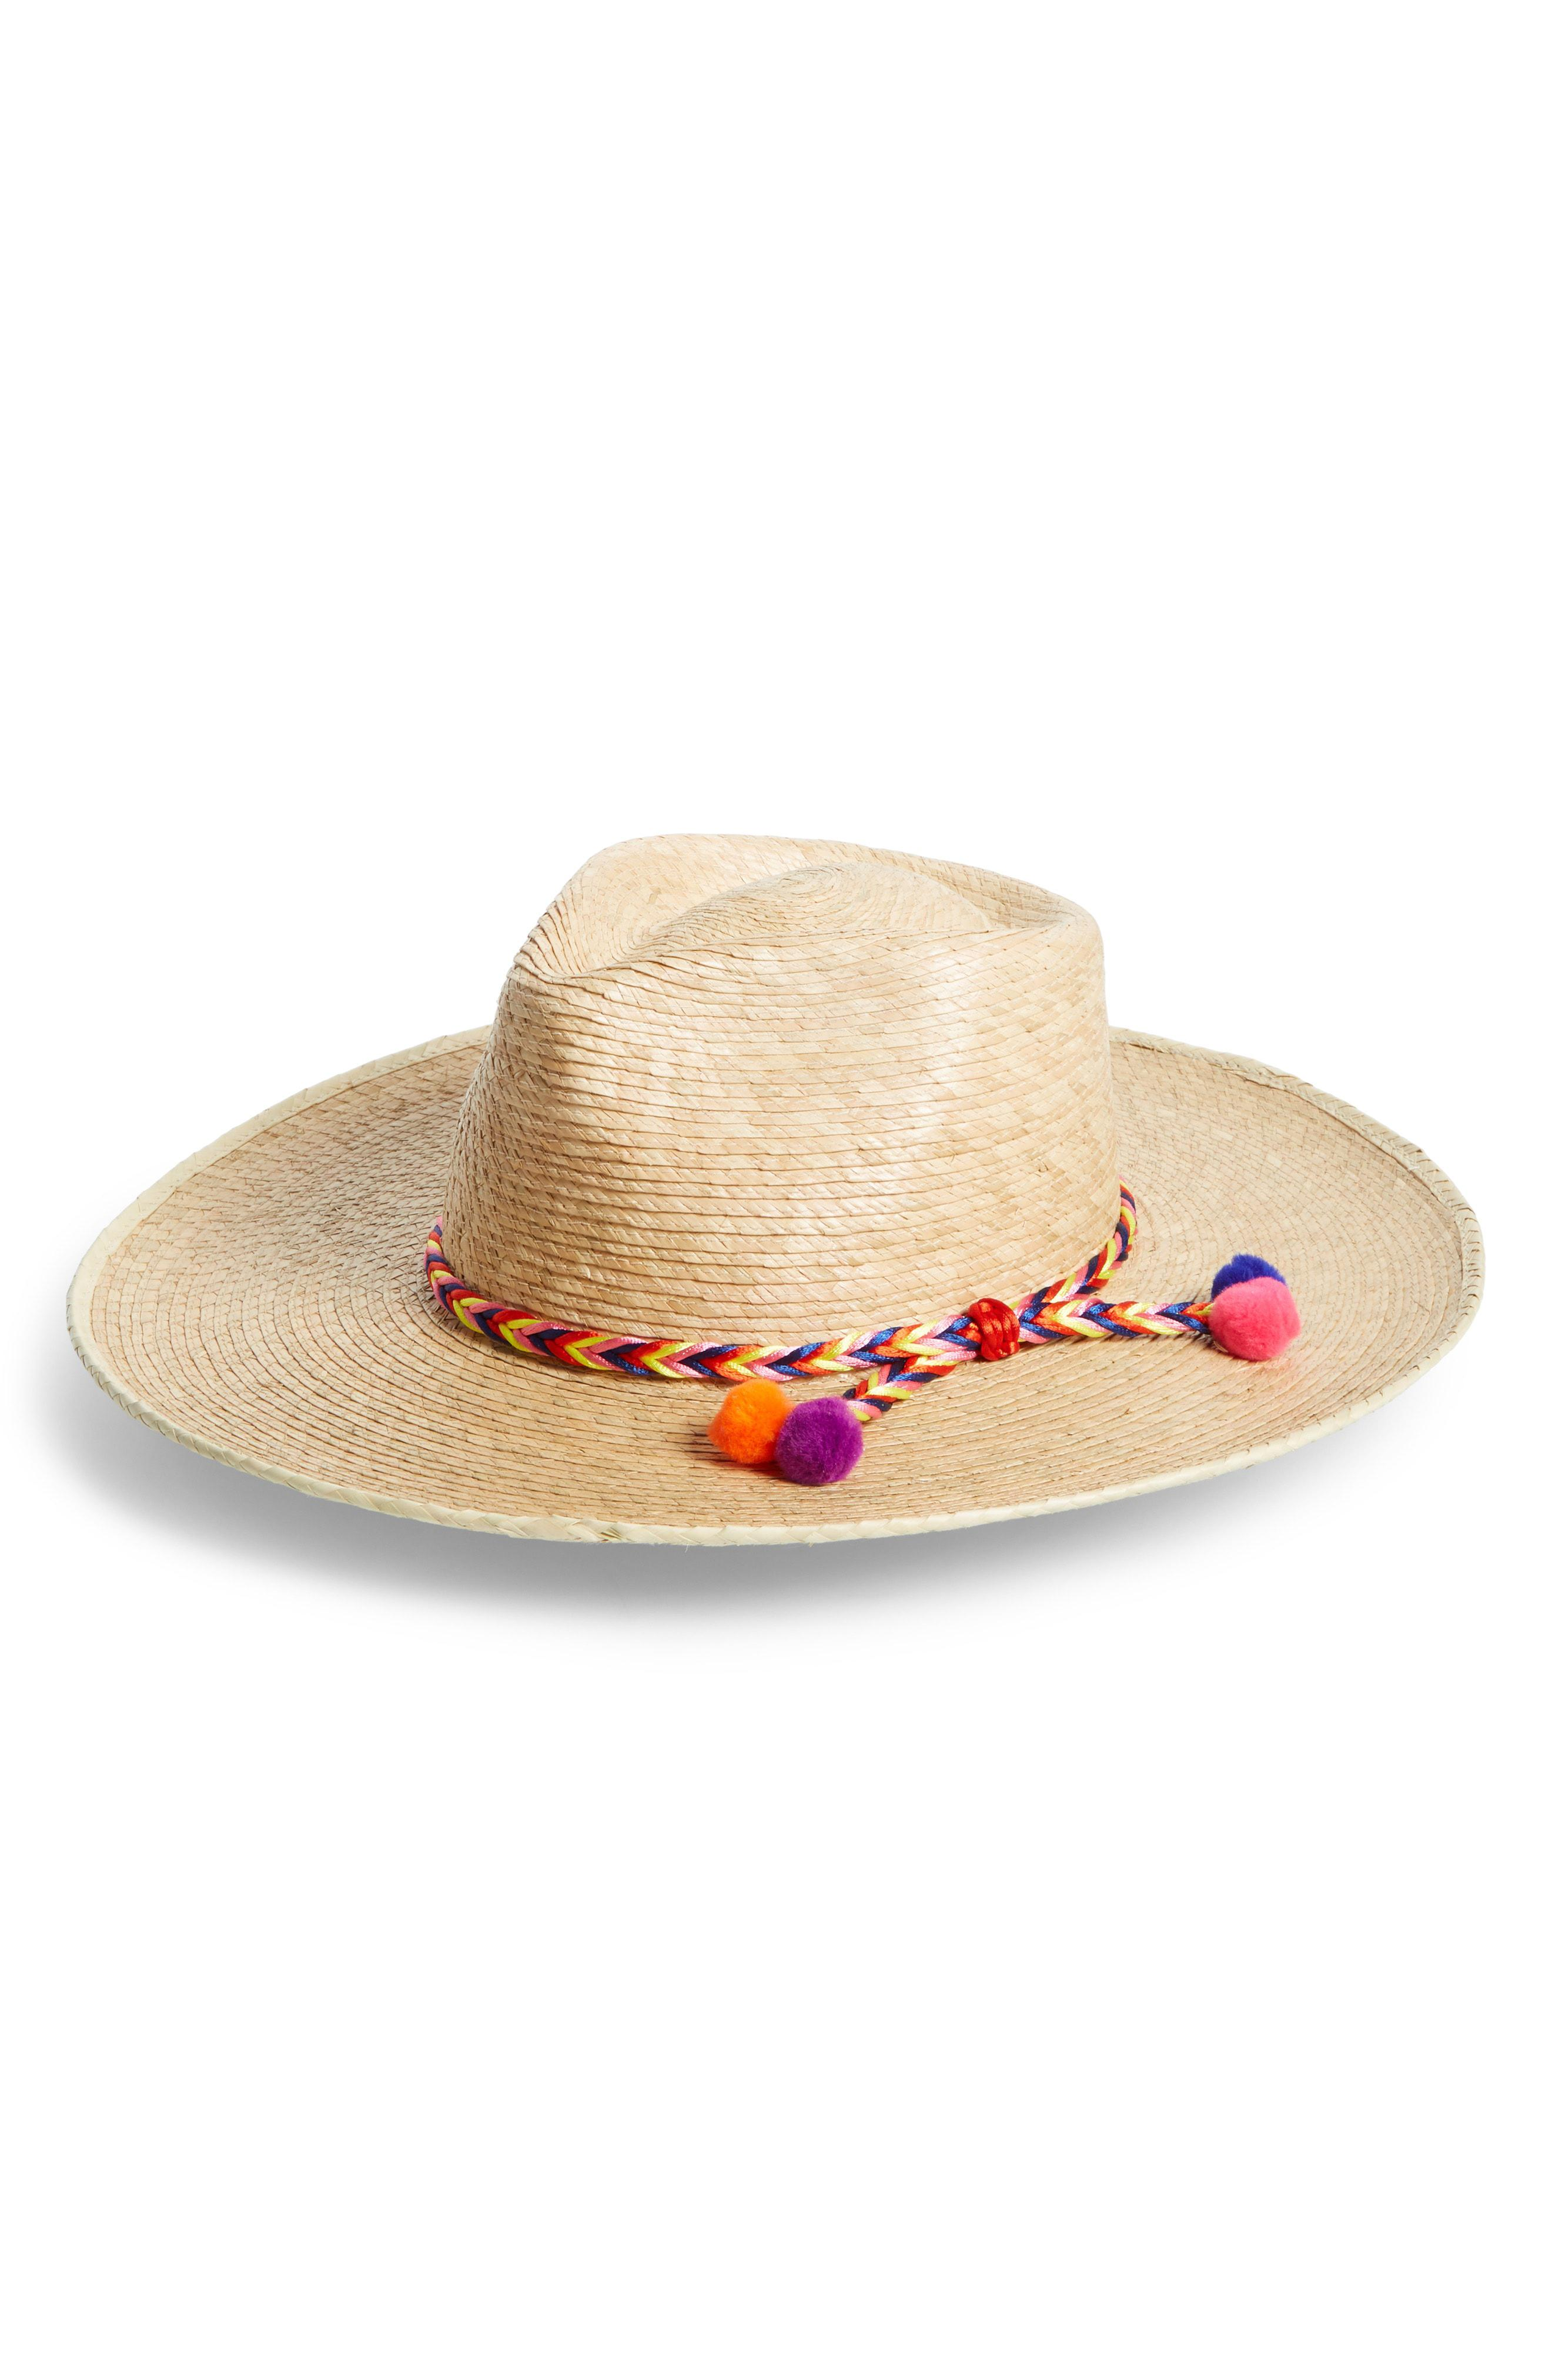 72d1f0e5037 Lyst - Brixton Joanna Palm Hat in Brown